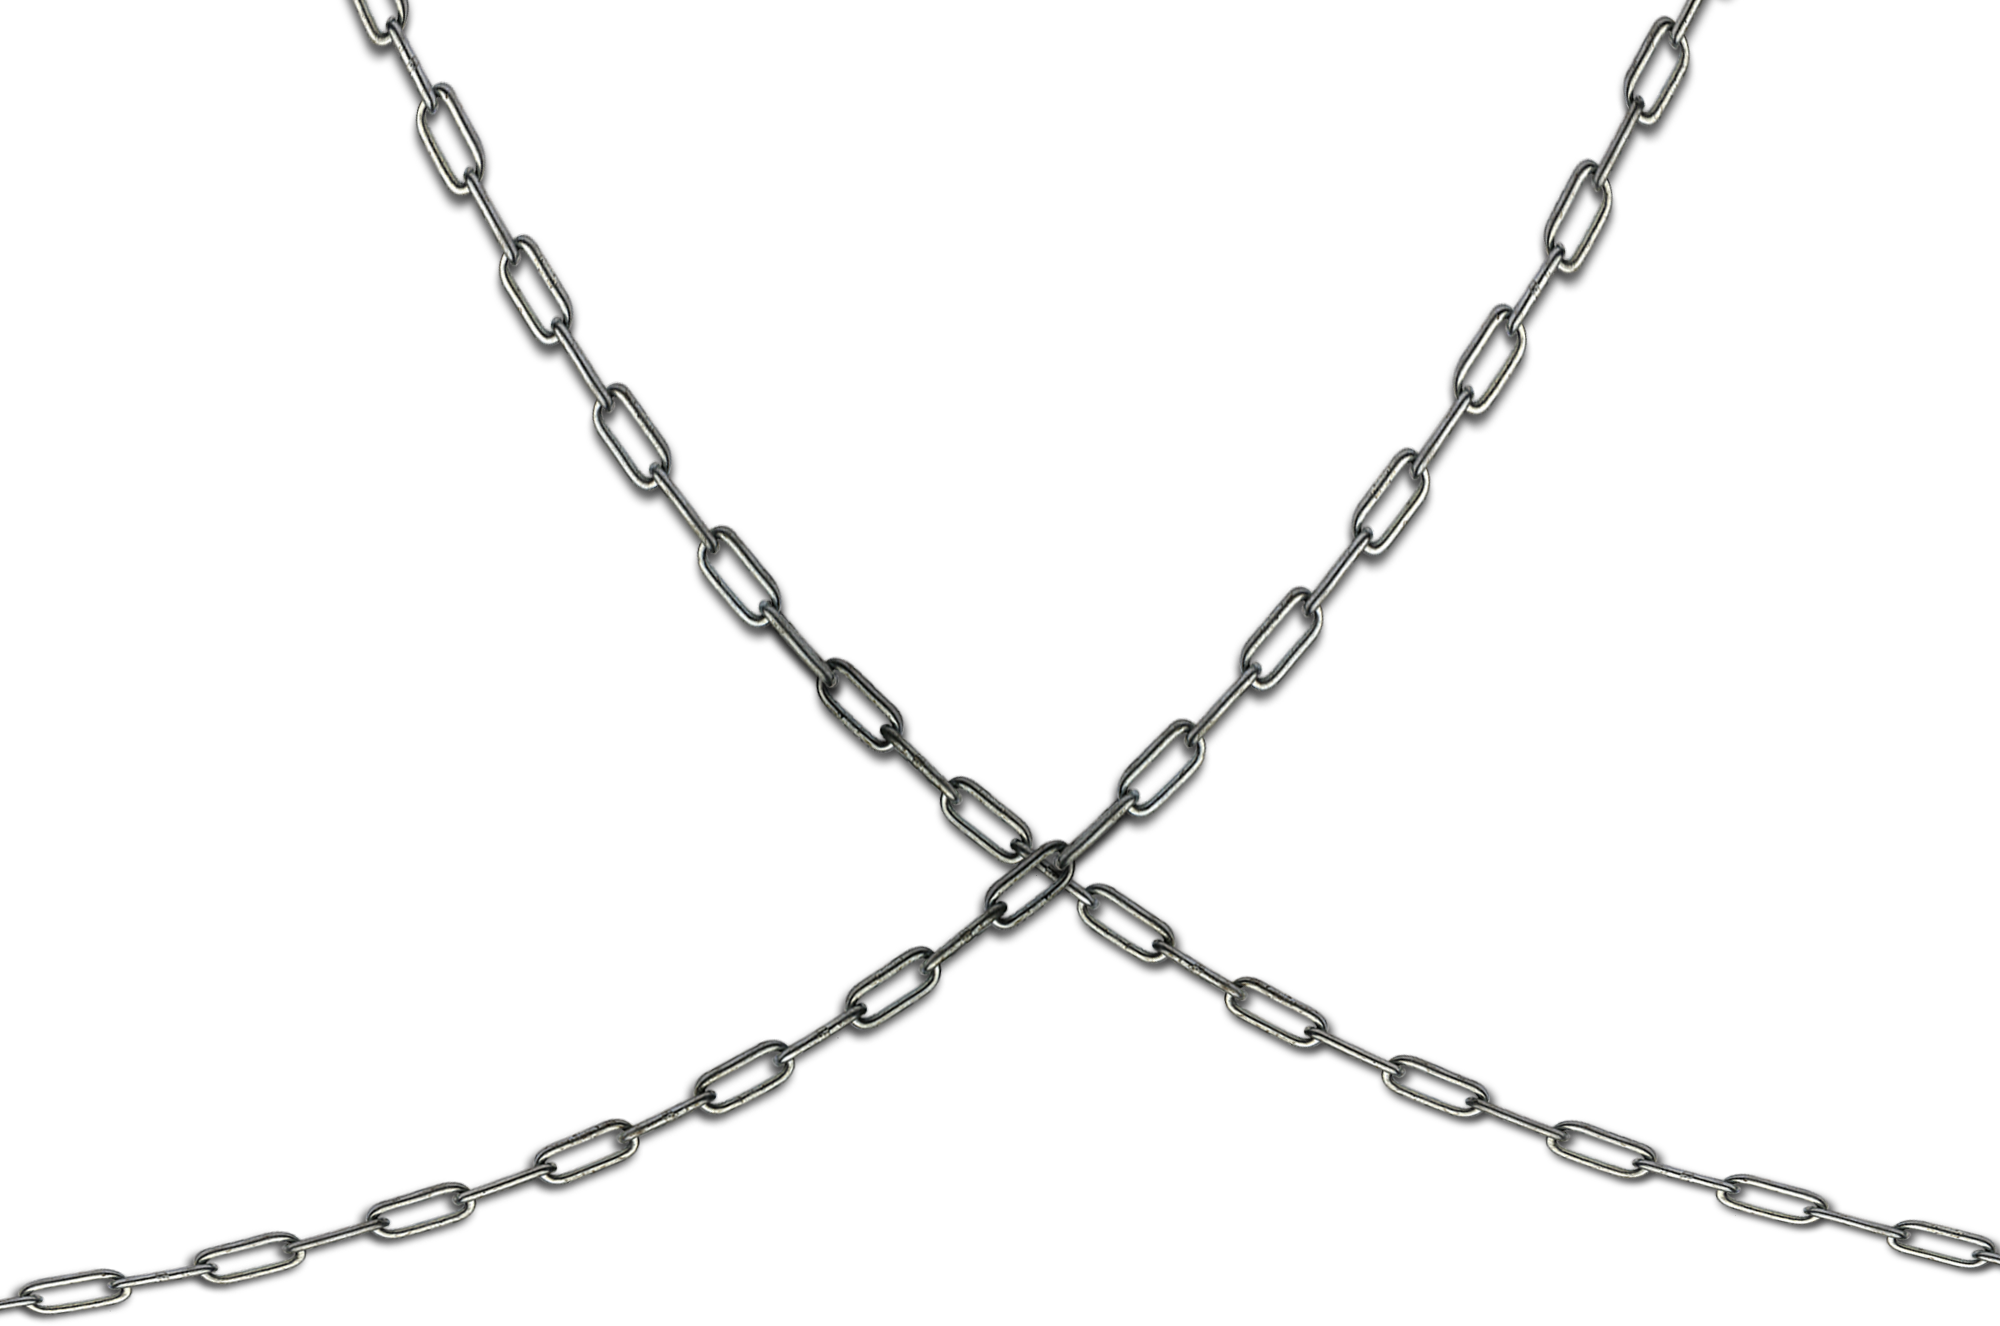 Chain PNG Transparent Chain.PNG Images. | PlusPNG